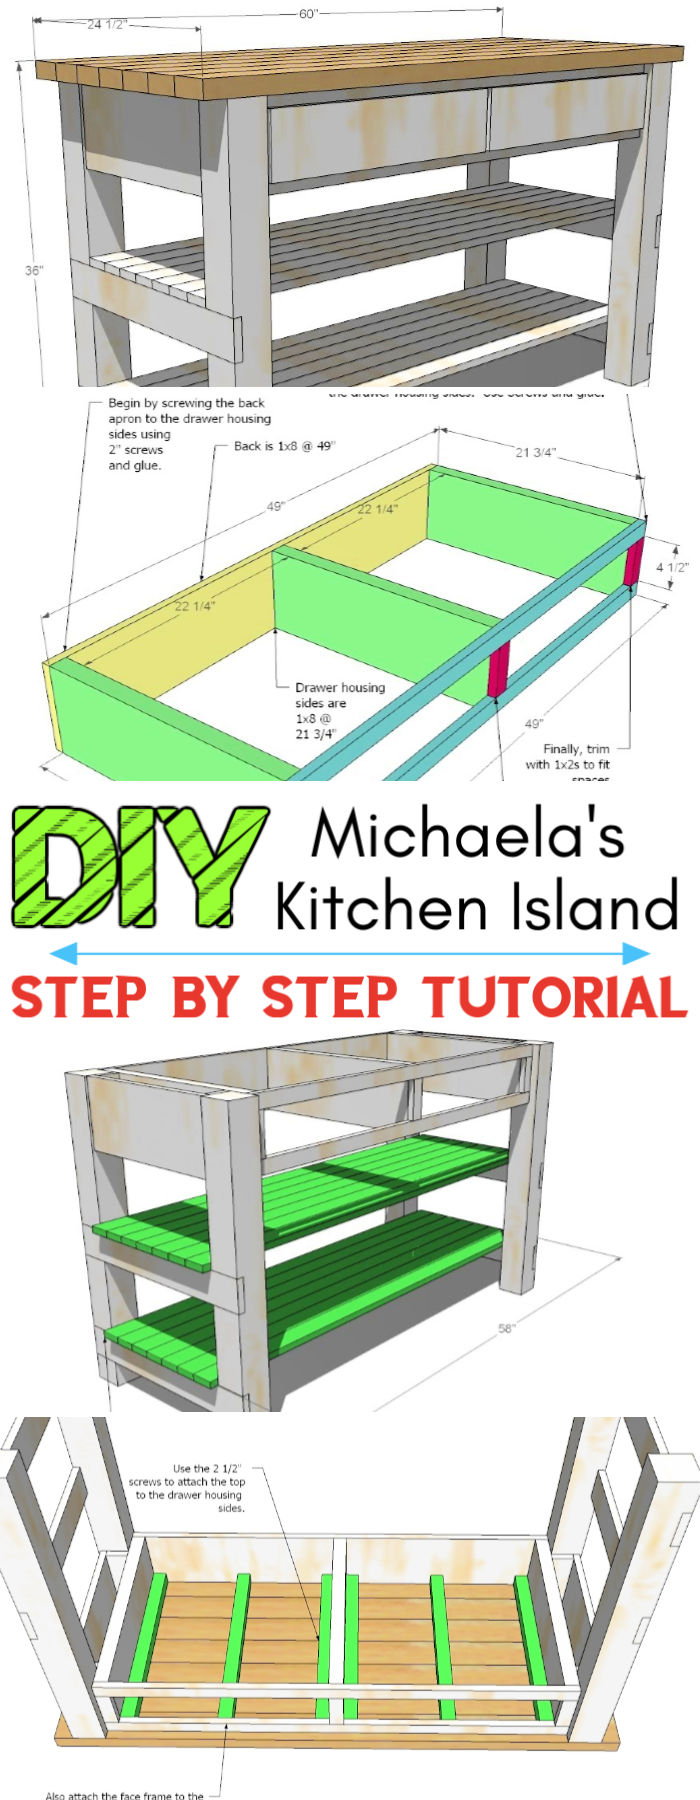 Build a Michaelas Kitchen Island